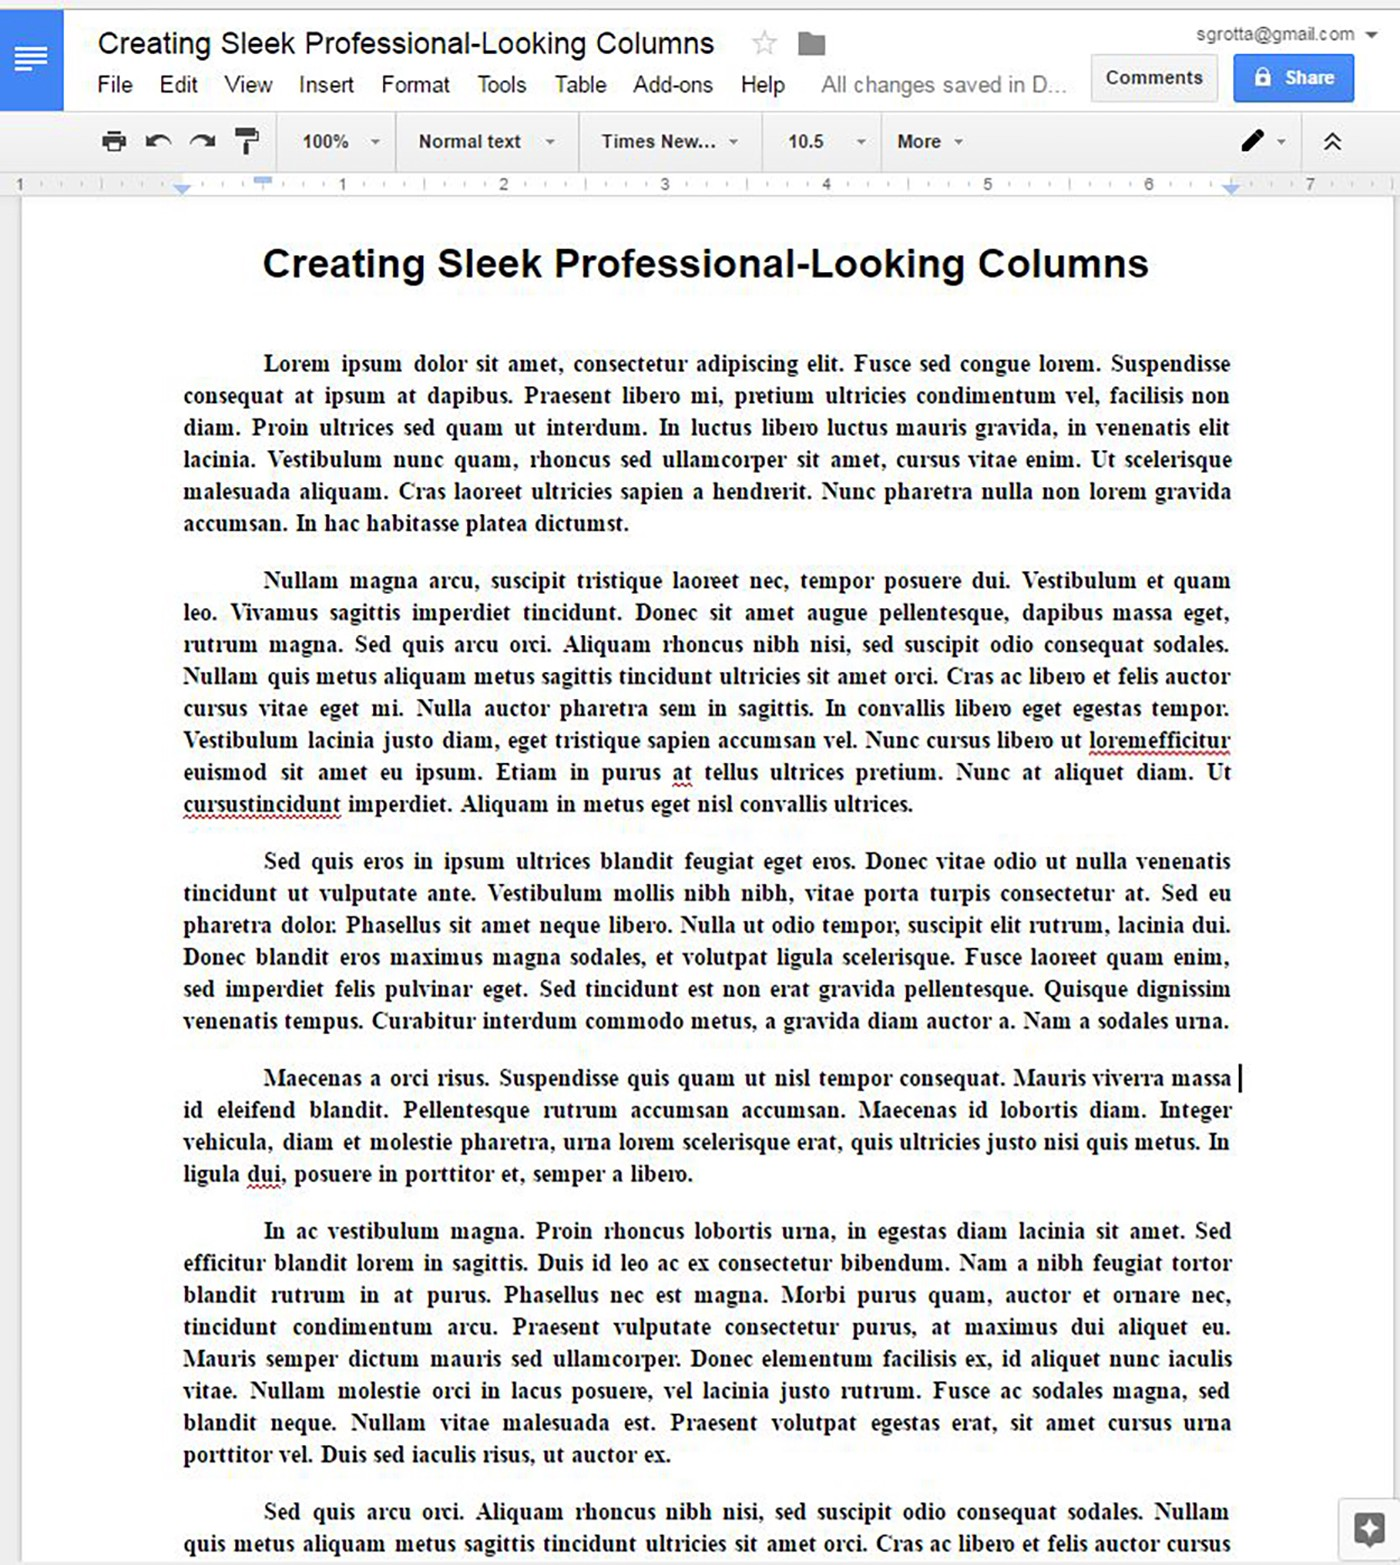 Create Sleek Professional-Looking Newsletter-Type Columns in Google Docs